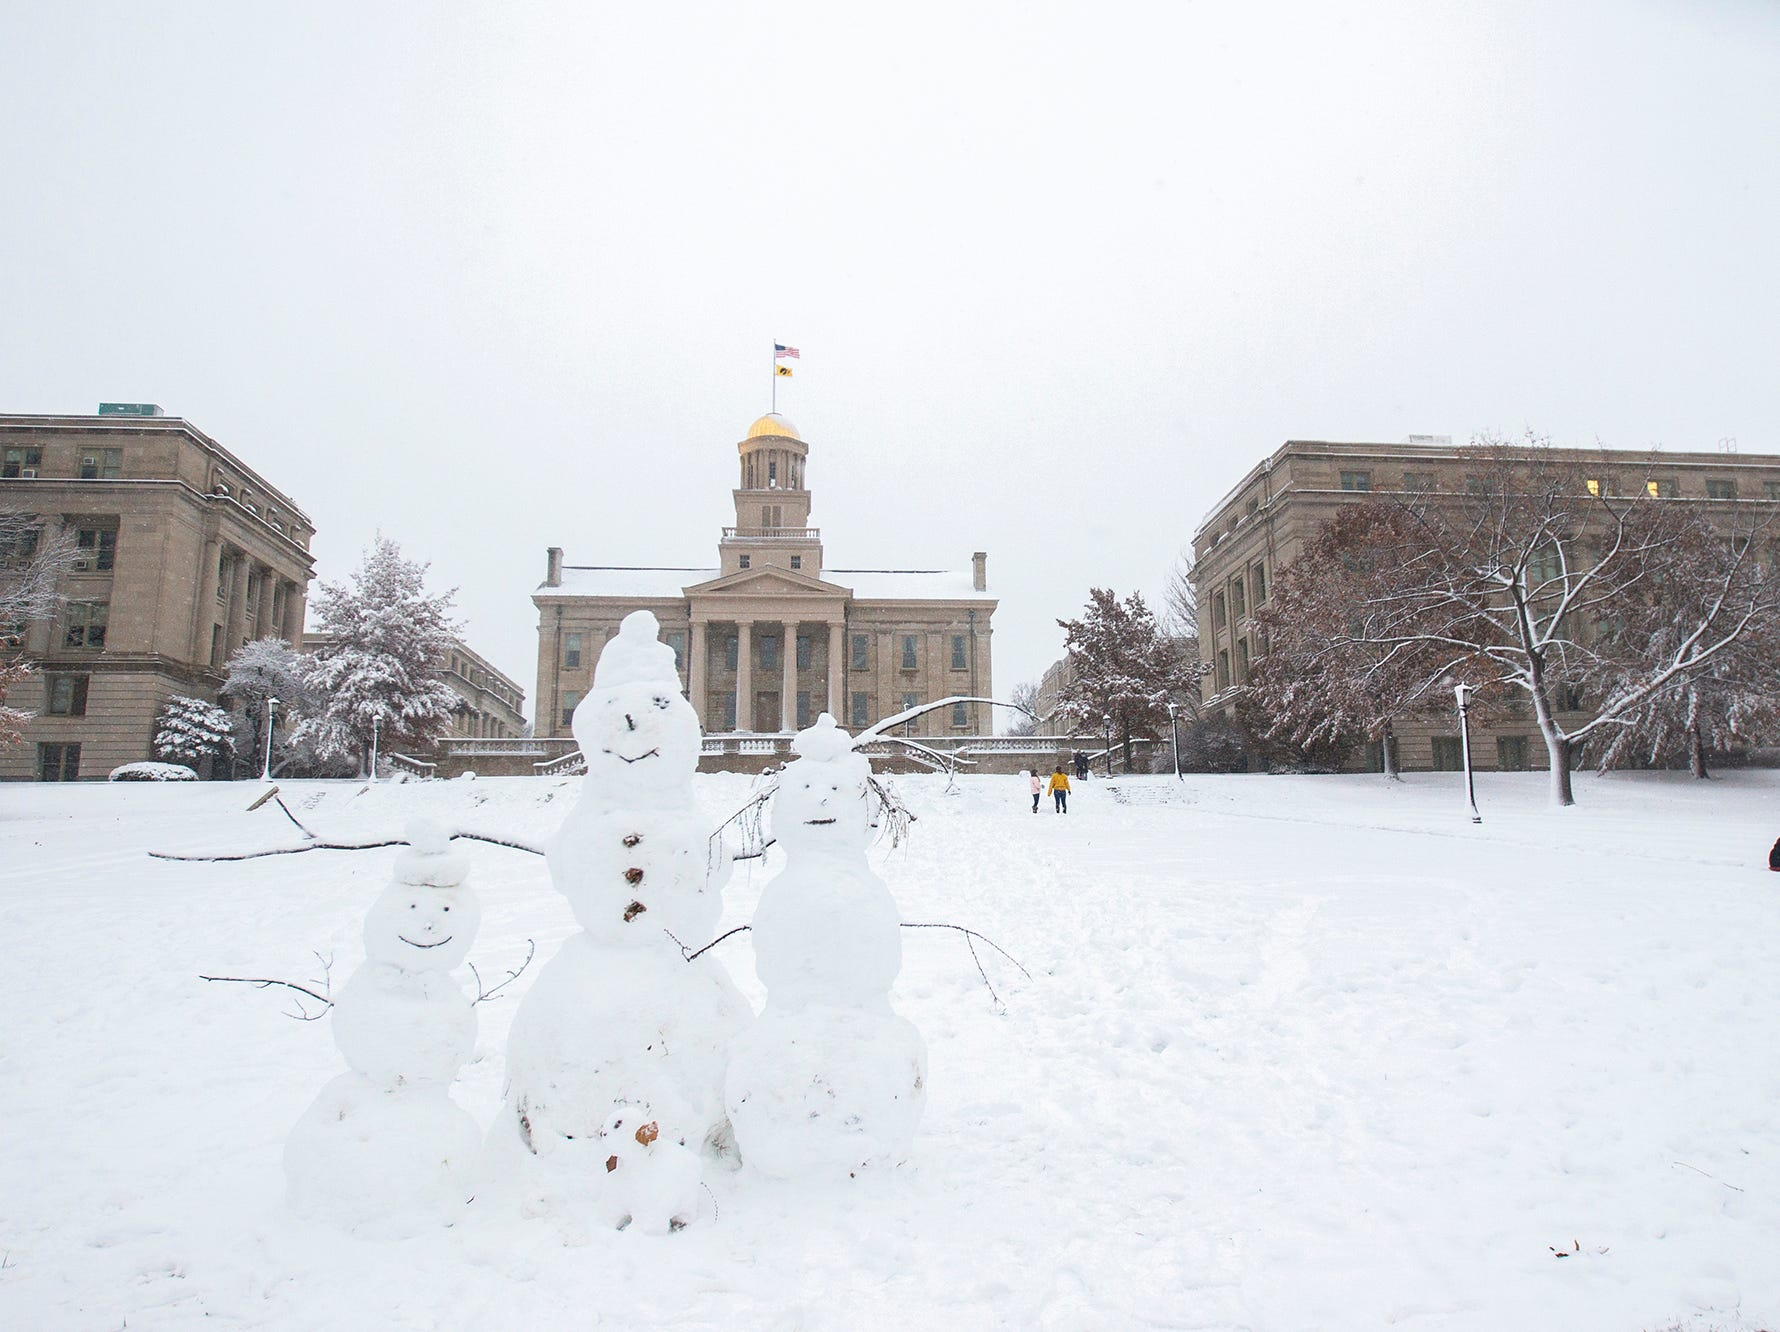 A family of snowmen sit together while people play in the snow on Sunday, Nov. 25, 2018, on the west side of the Pentacrest in Iowa City.